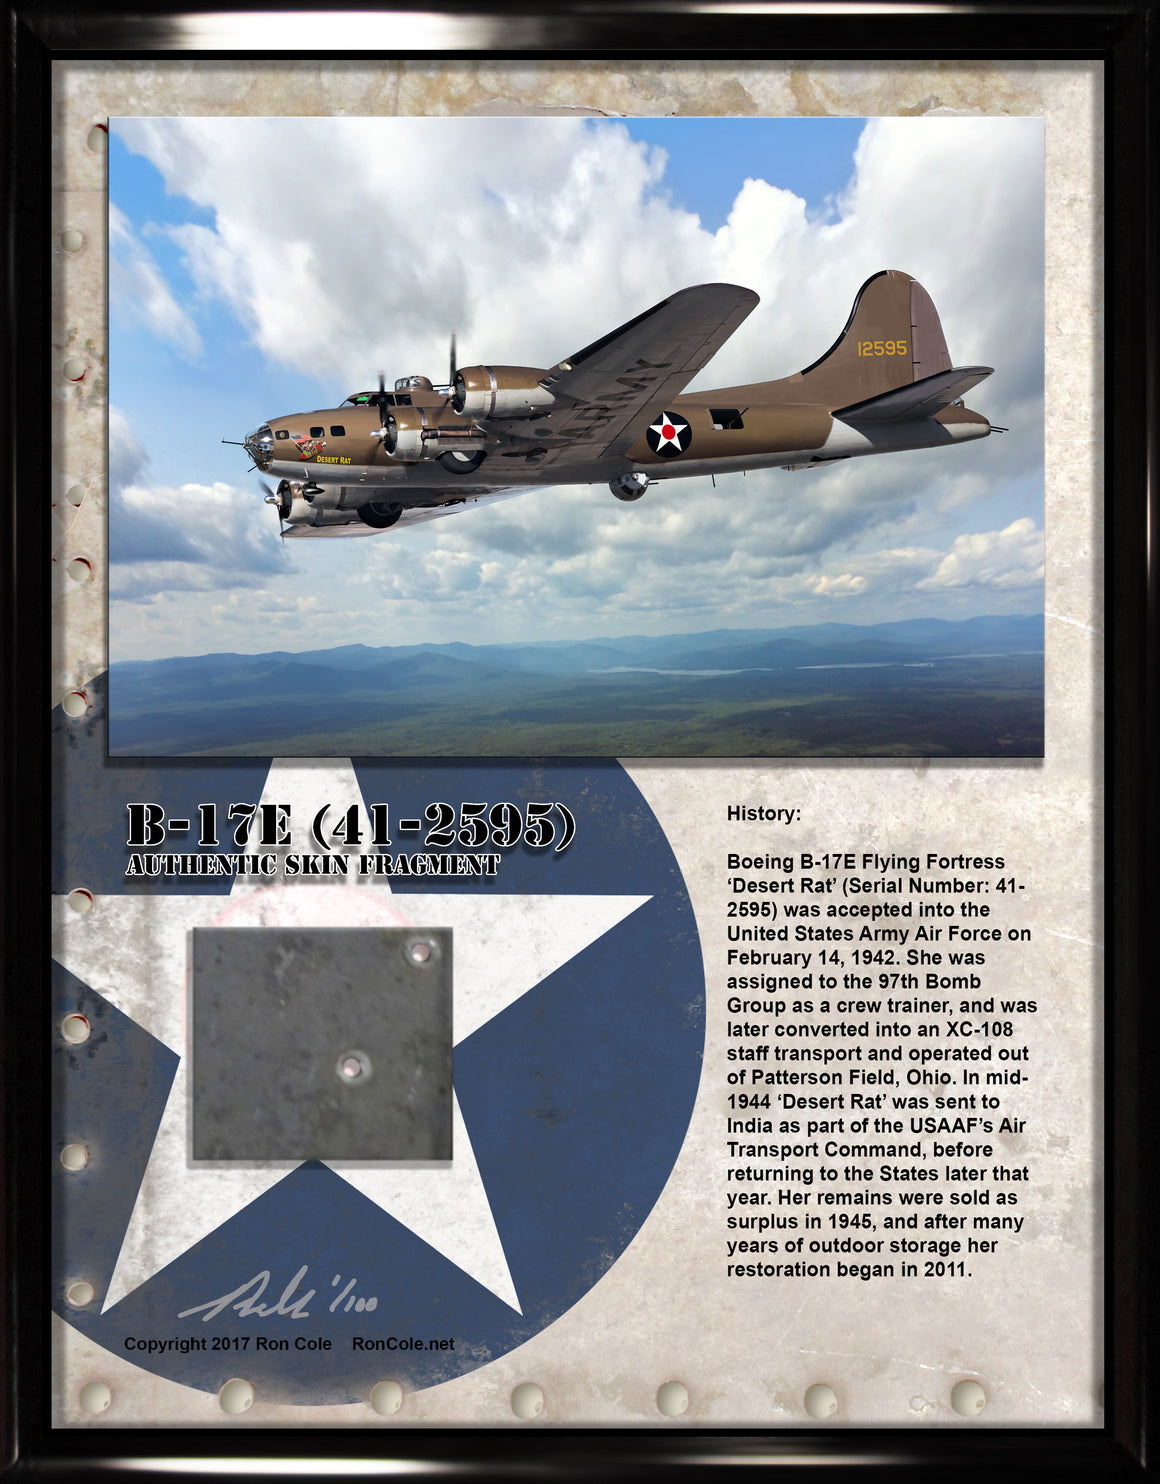 Boeing B-17E Flying Fortress (41-2595) 'Desert Rat' Relic Display